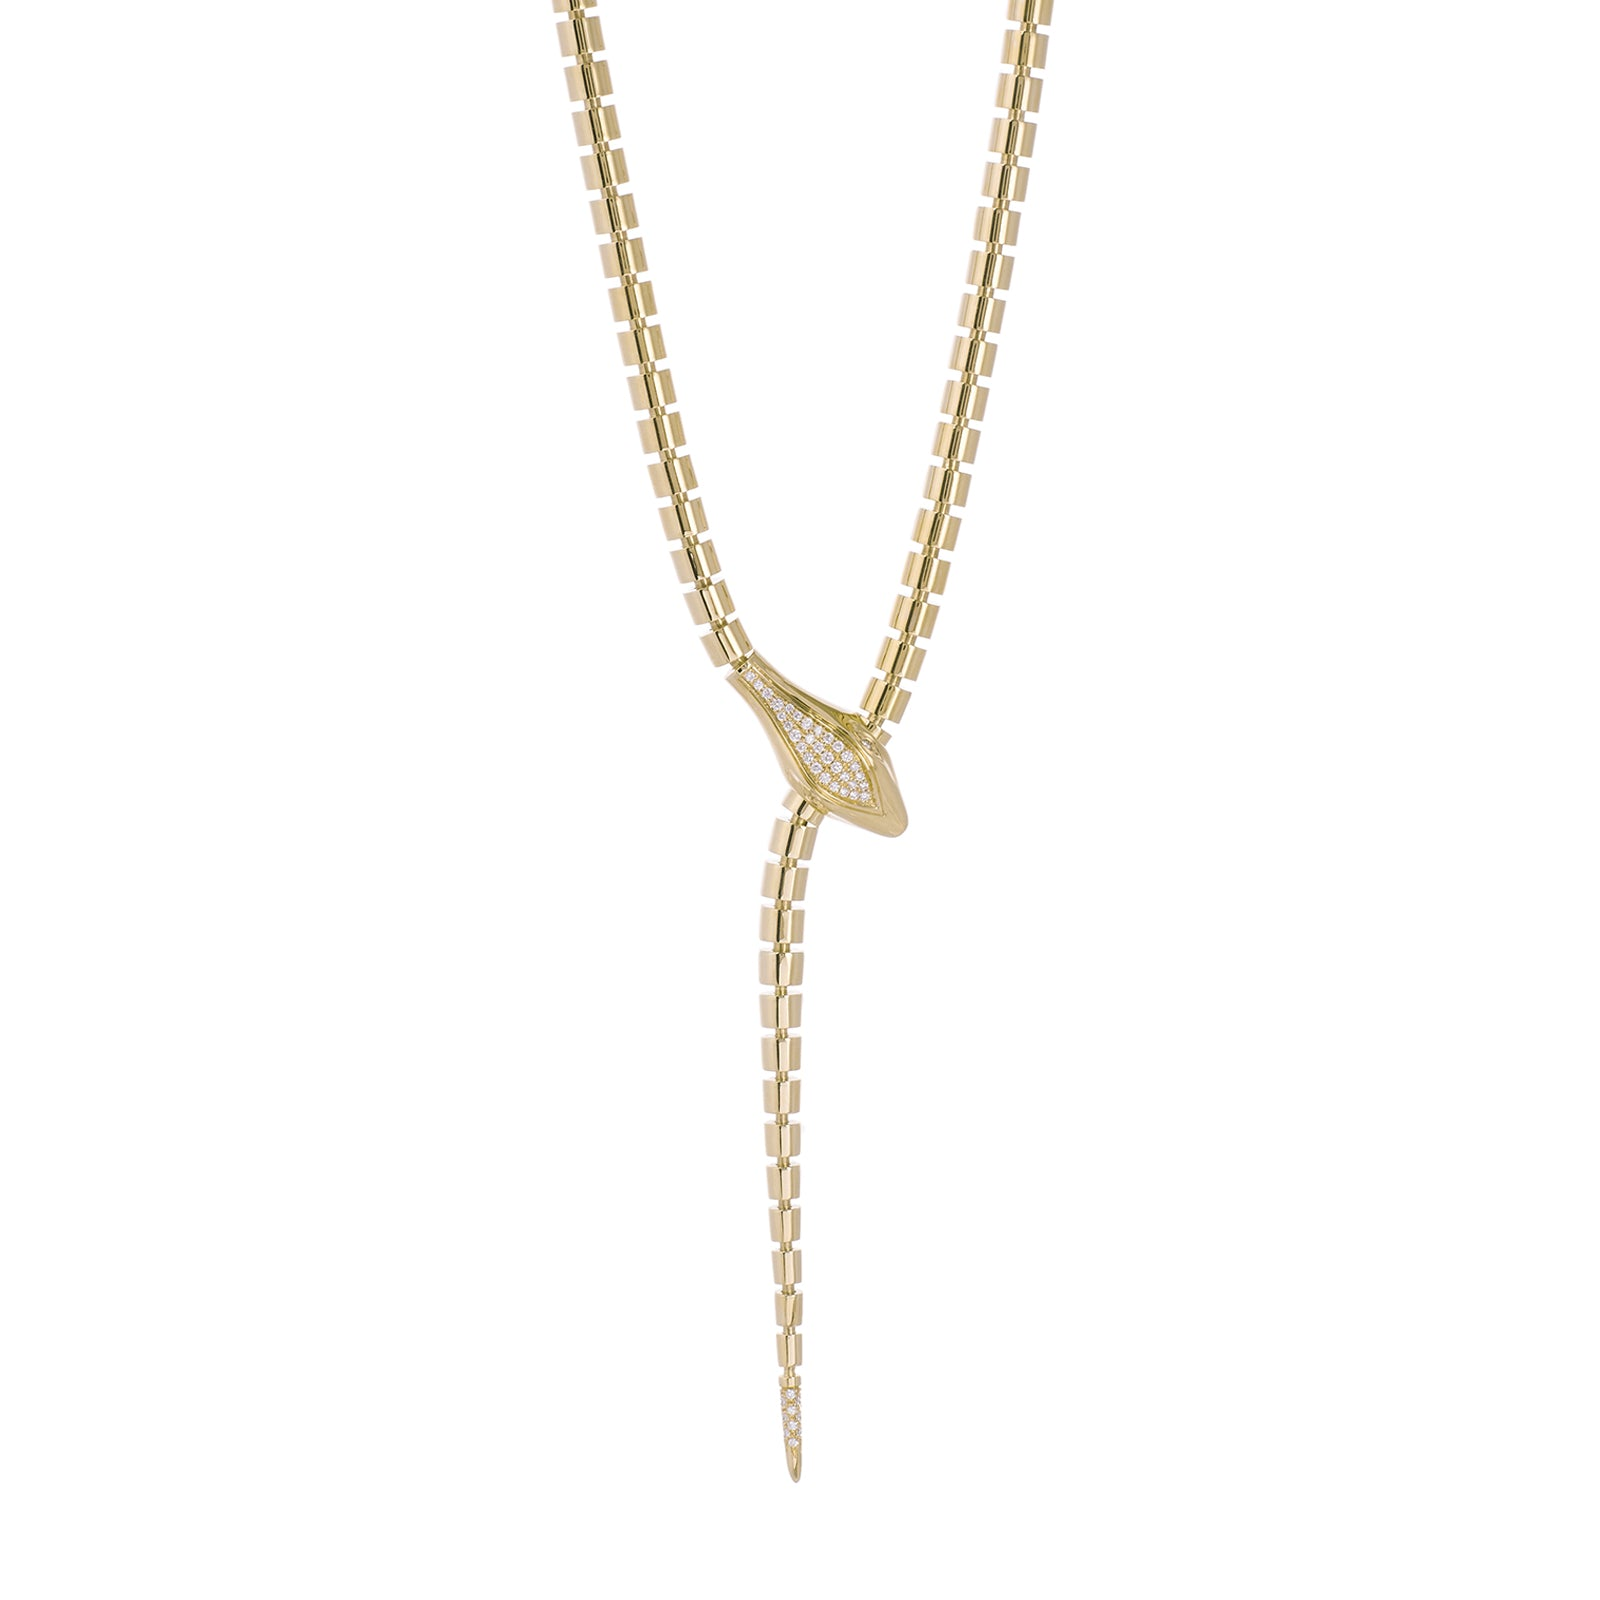 Sidney Garber Wrap Around Snake Lariat Necklace - Yellow Gold - Necklaces - Broken English Jewelry